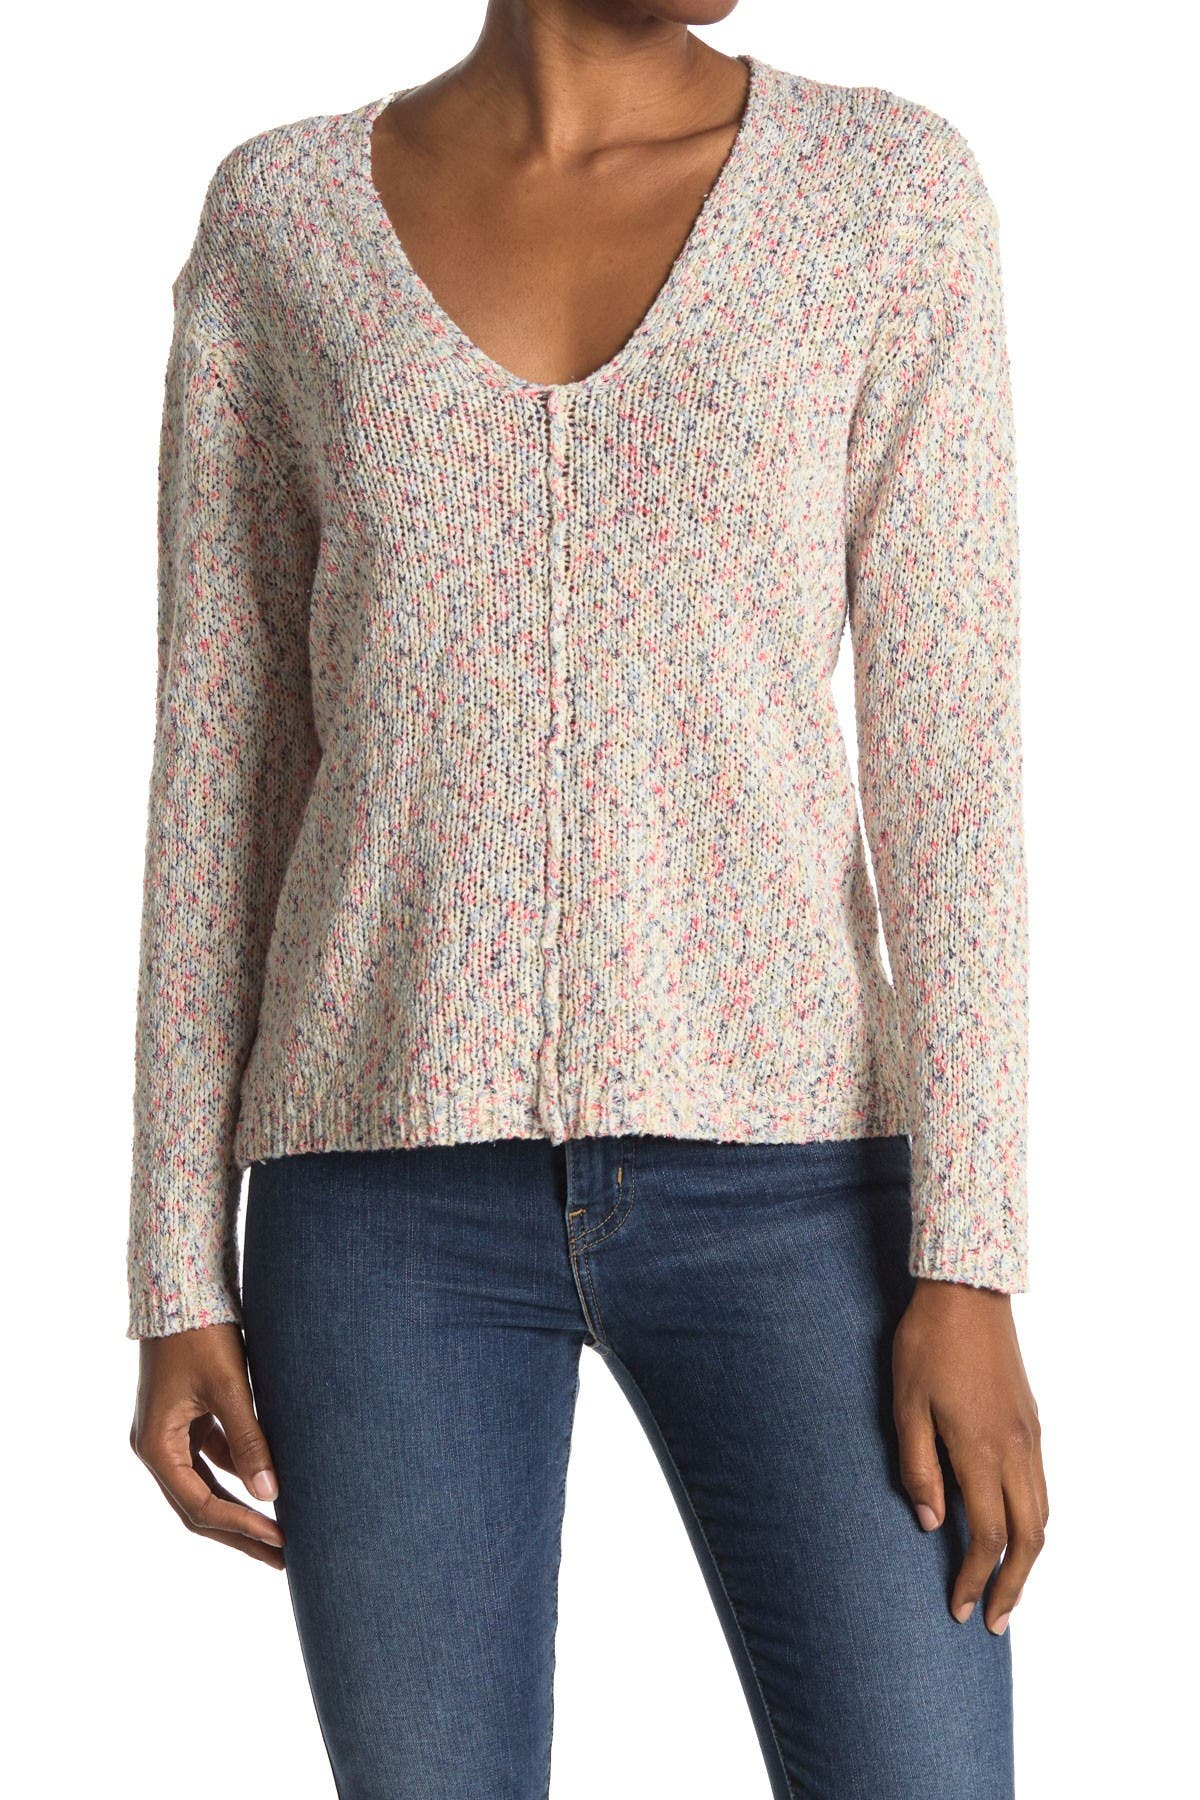 Image of Heartloom Relaxed Fit Marbled Knit V-Neck Sweater